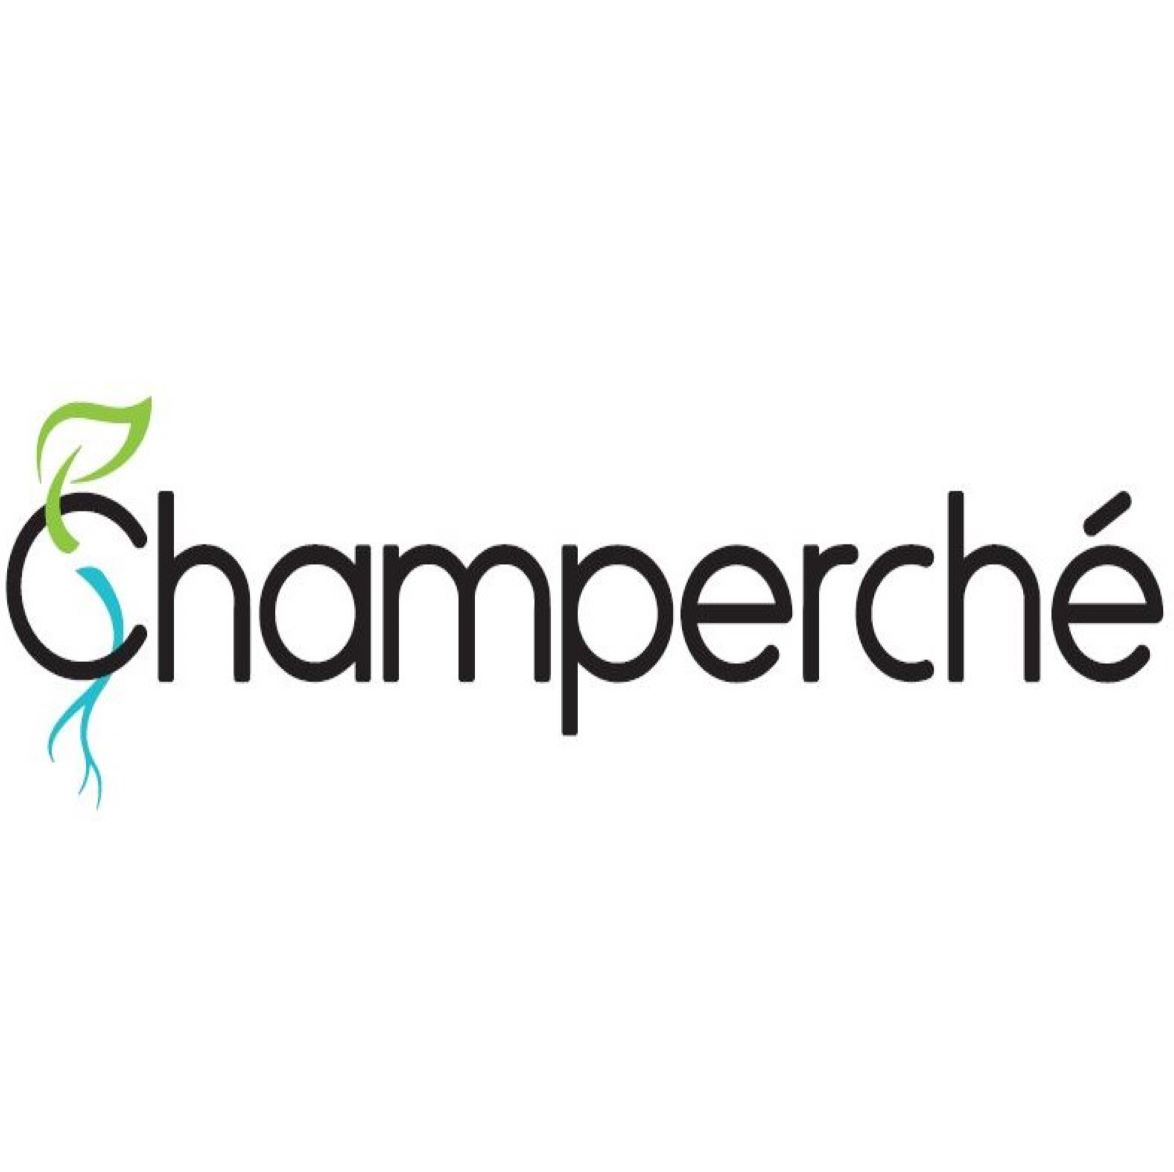 Champerche indoor urban farming